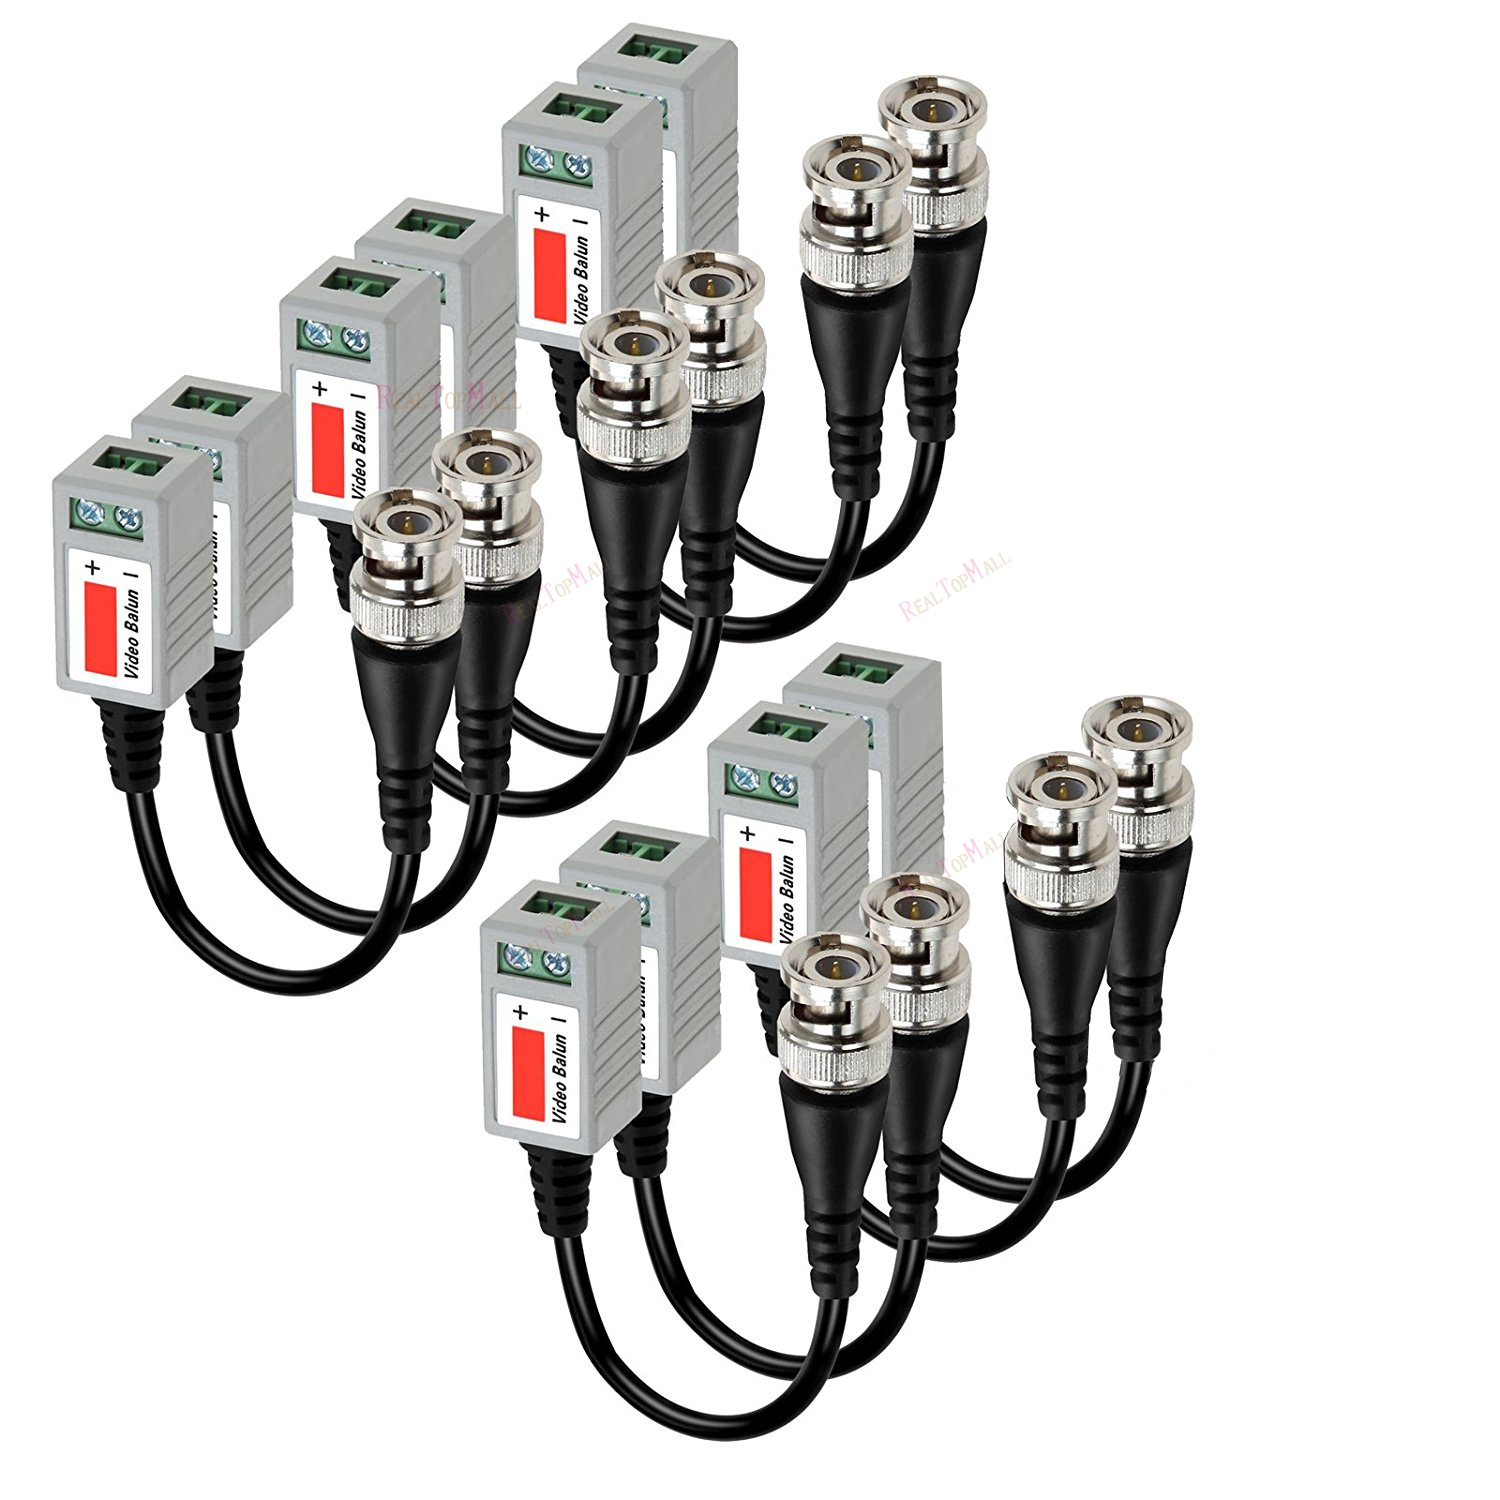 Cctv Camera Passive Video Balun Bnc Connector Coaxial